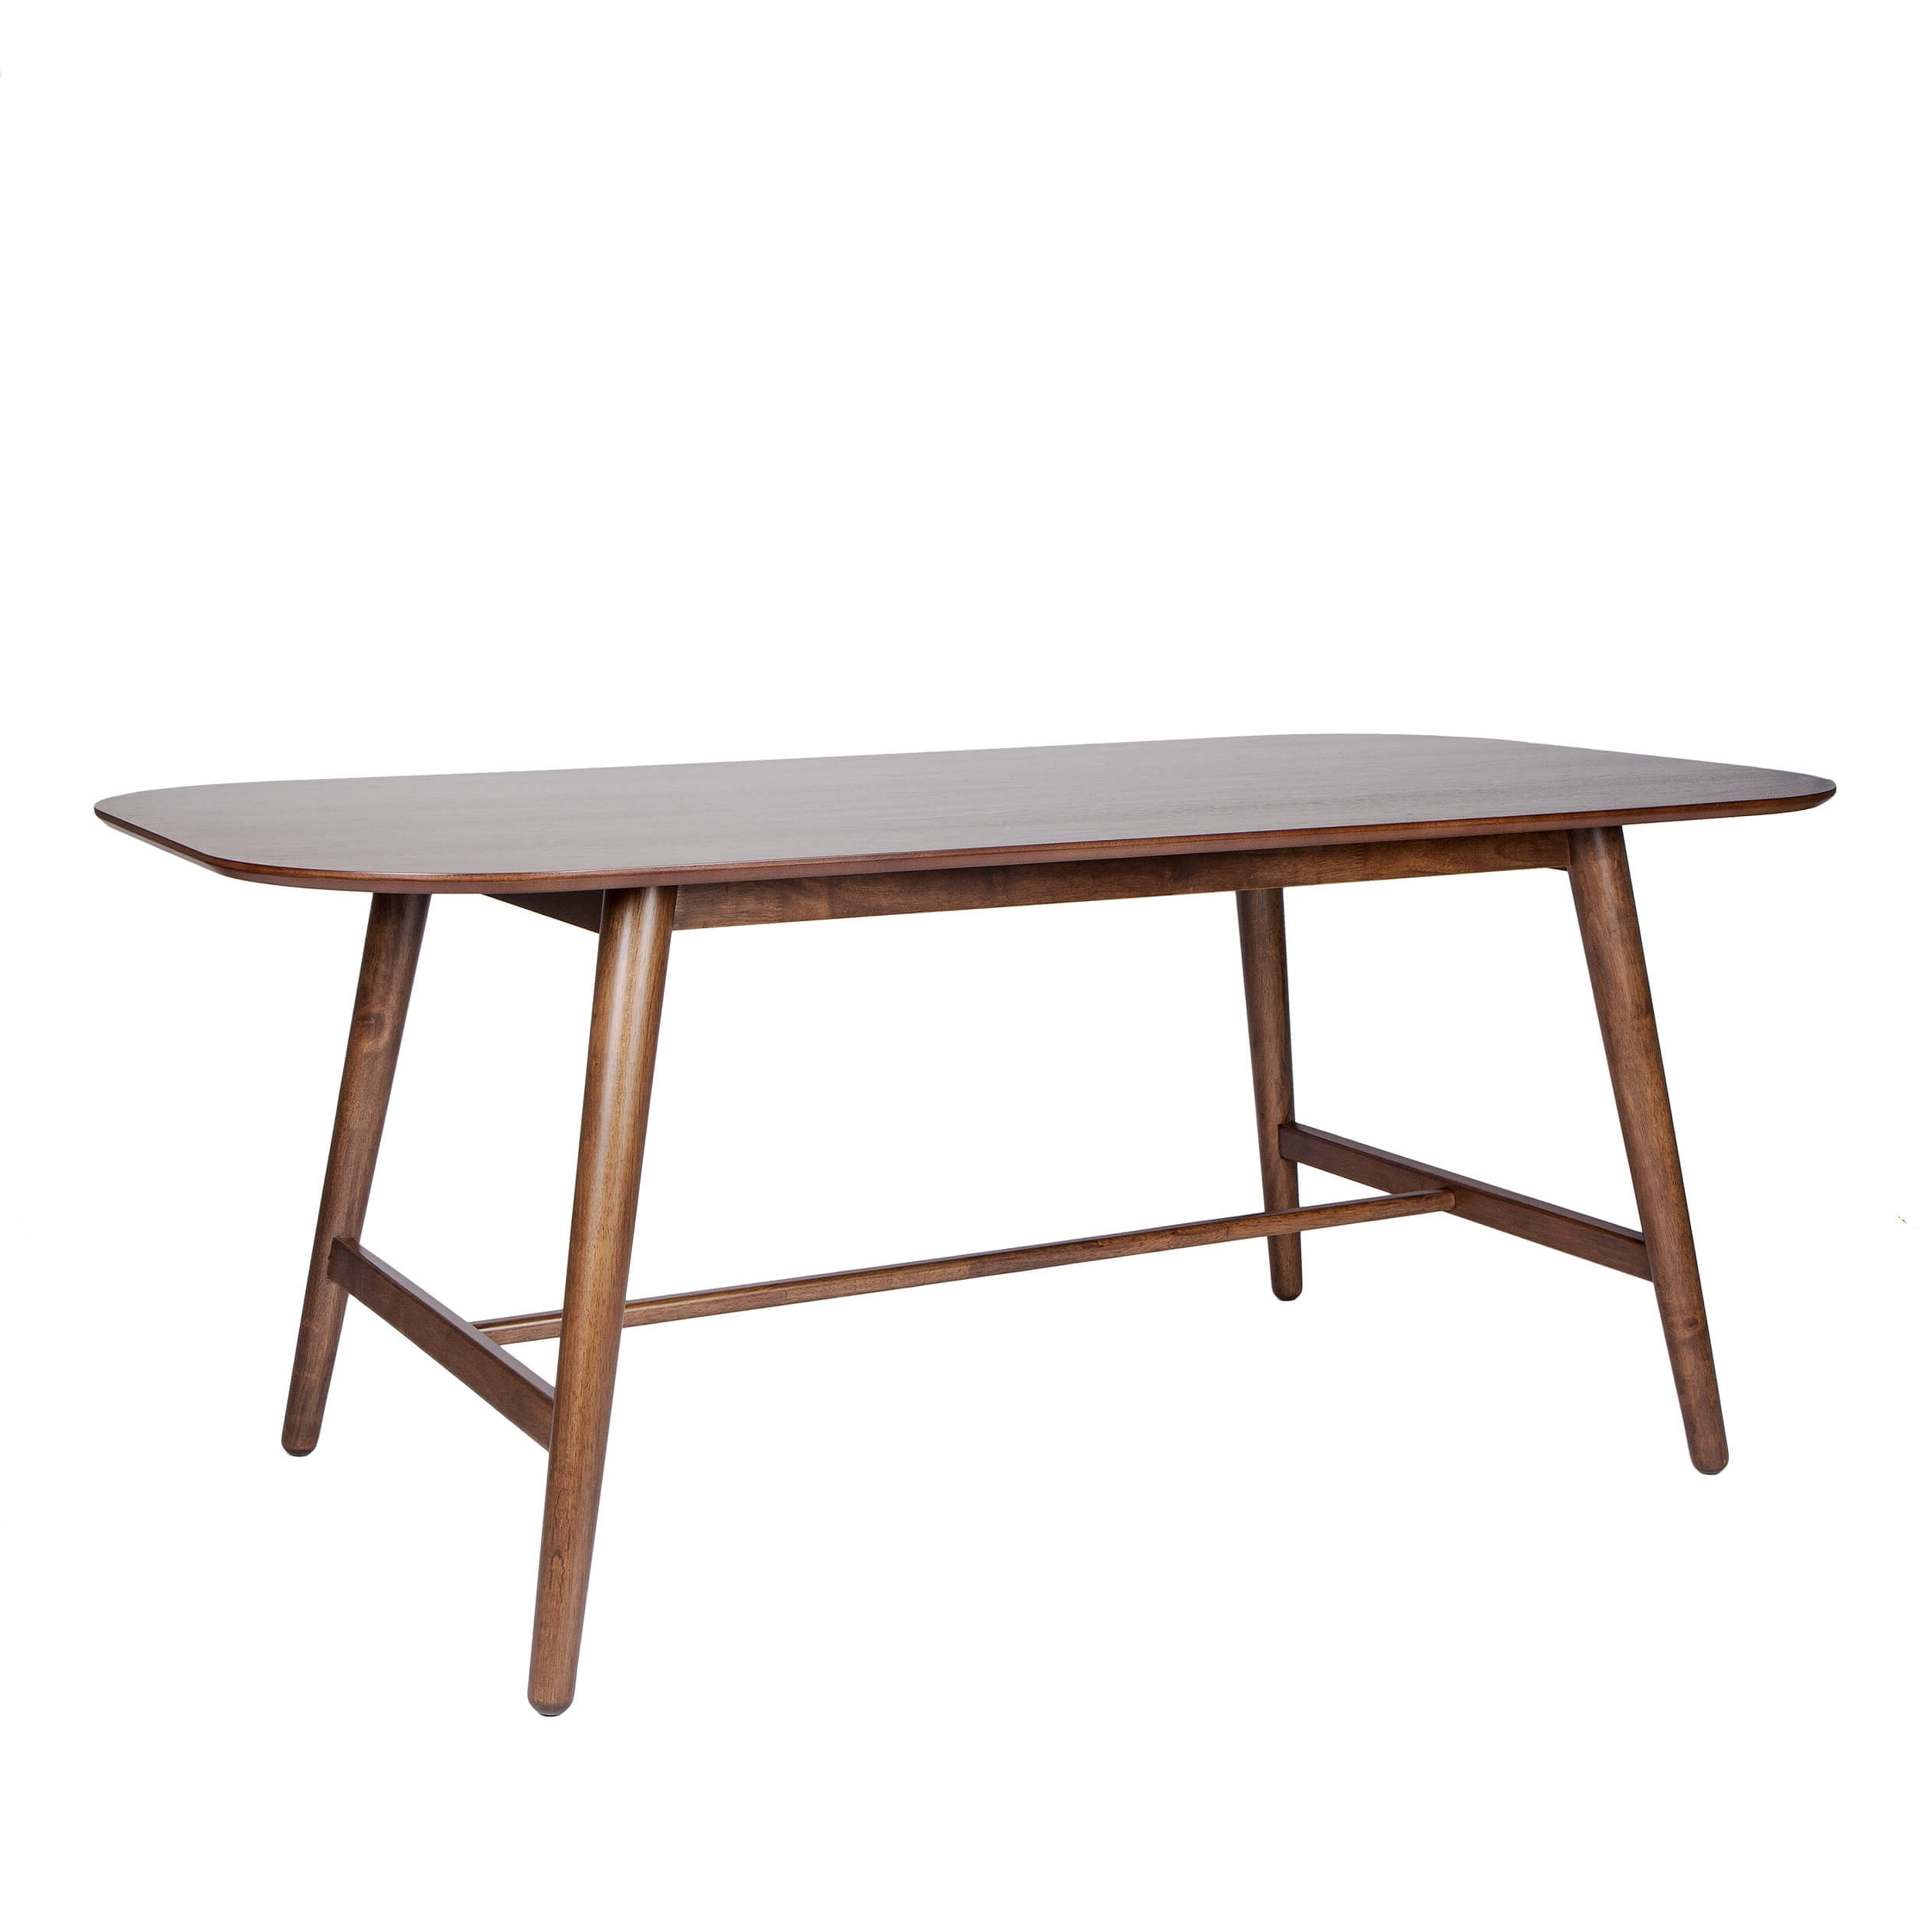 Danish Dining Tables intended for Most Recent Danish Dining Table With Rounded Corners - Monty